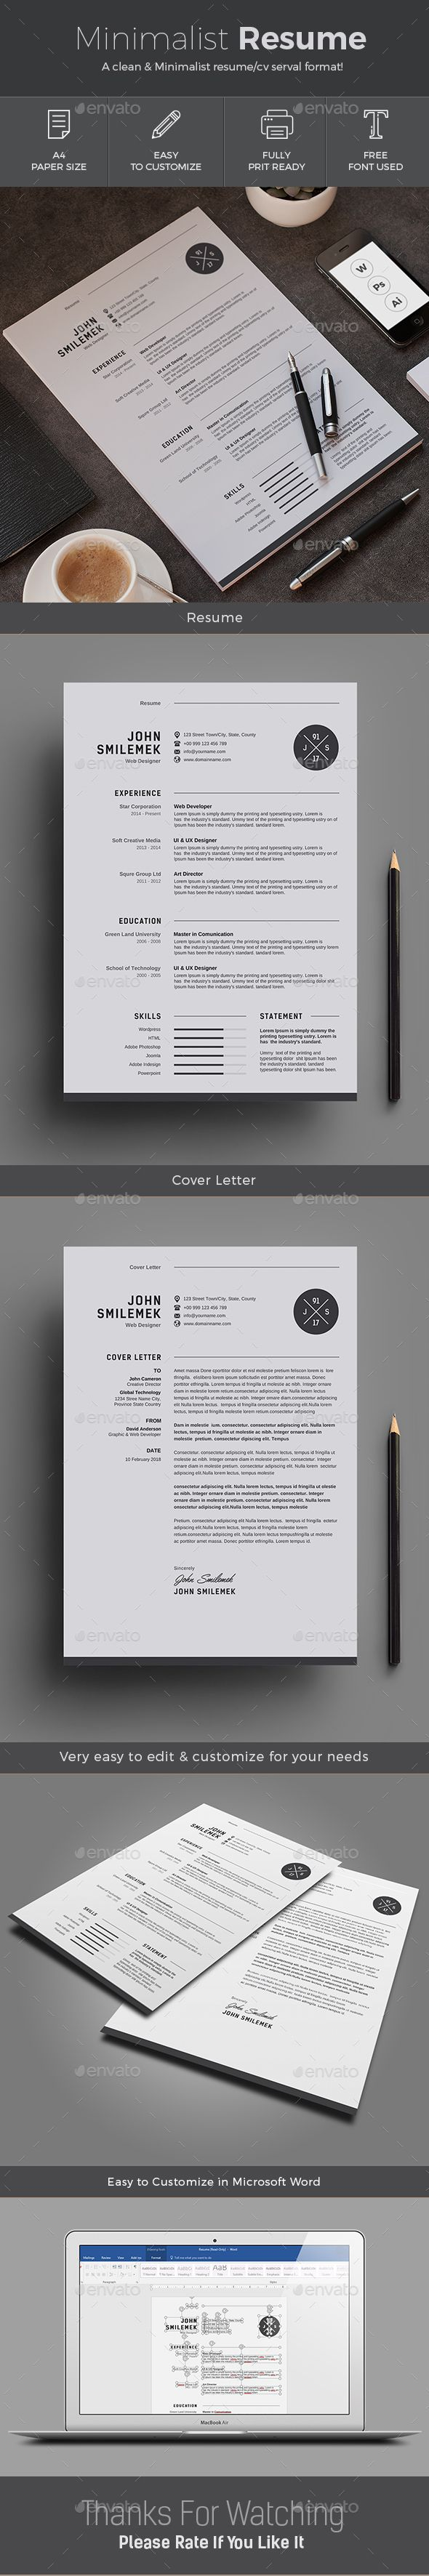 524 best Resume templates images on Pinterest | Resume templates ...